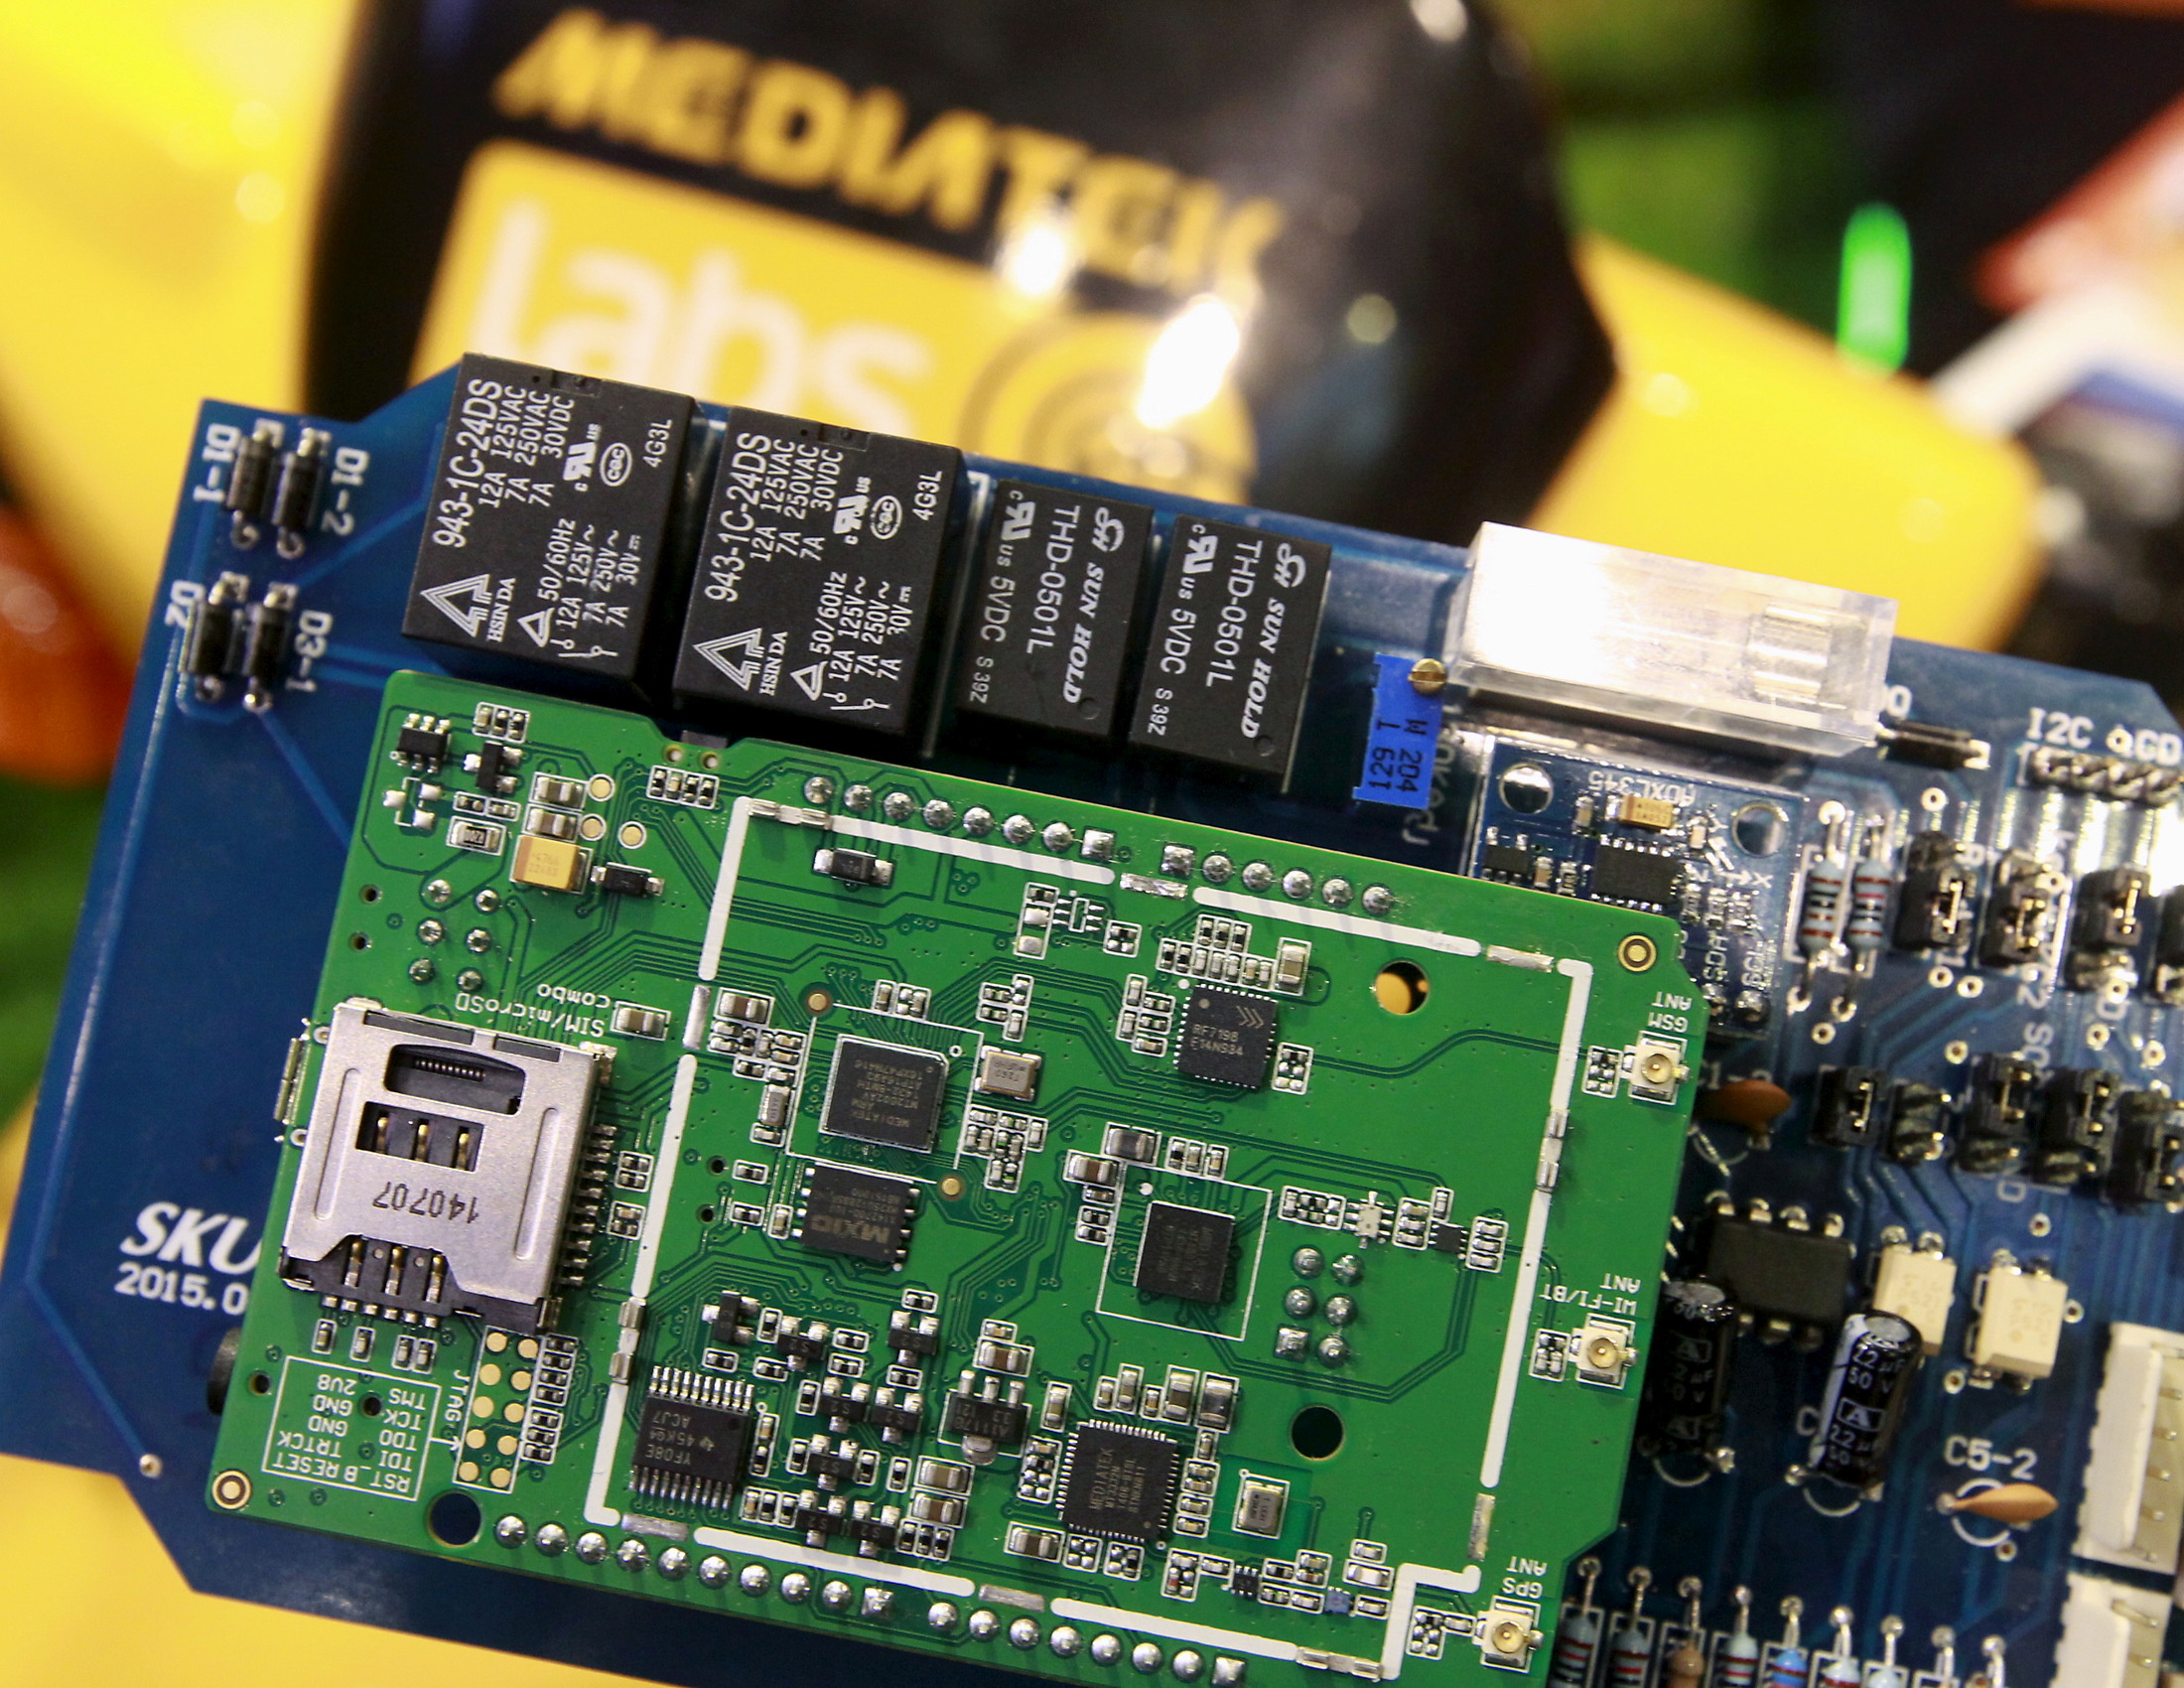 MediaTek chips are seen on a development board at the MediaTek booth during the 2015 Computex exhibition in Taipei, Taiwan, June 3, 2015. Computex, the world's second largest computer show, runs from June 2 to 6. REUTERS/Pichi Chuang/File Photo